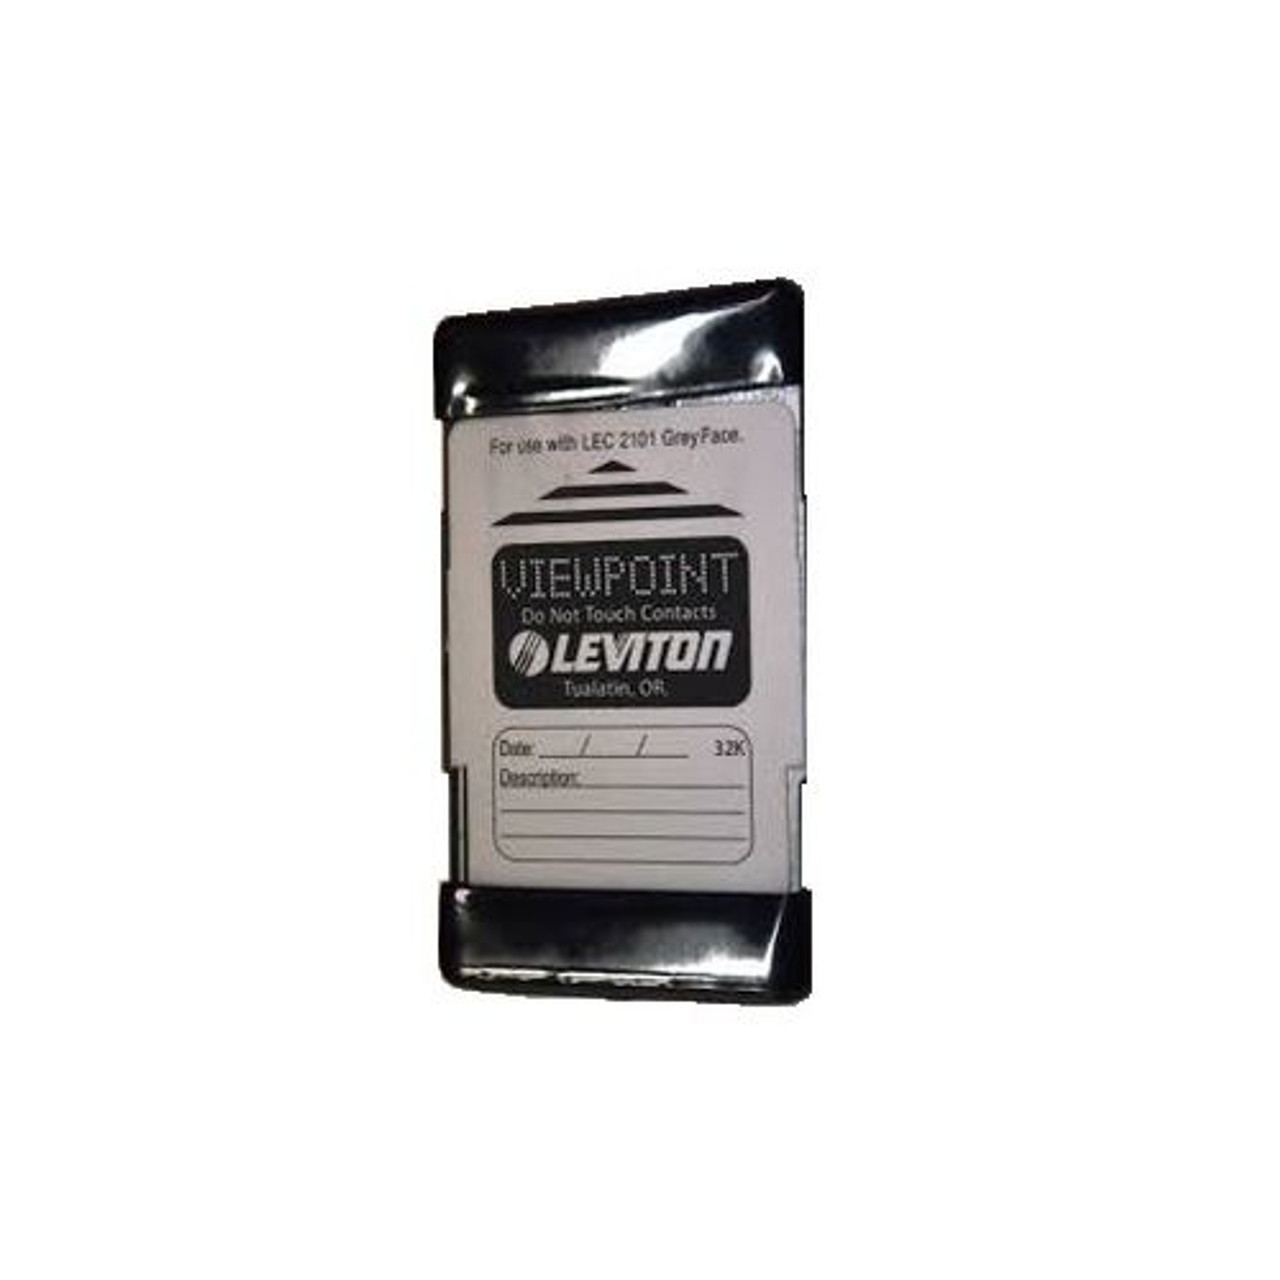 Leviton Colortran EEprom Memory Card